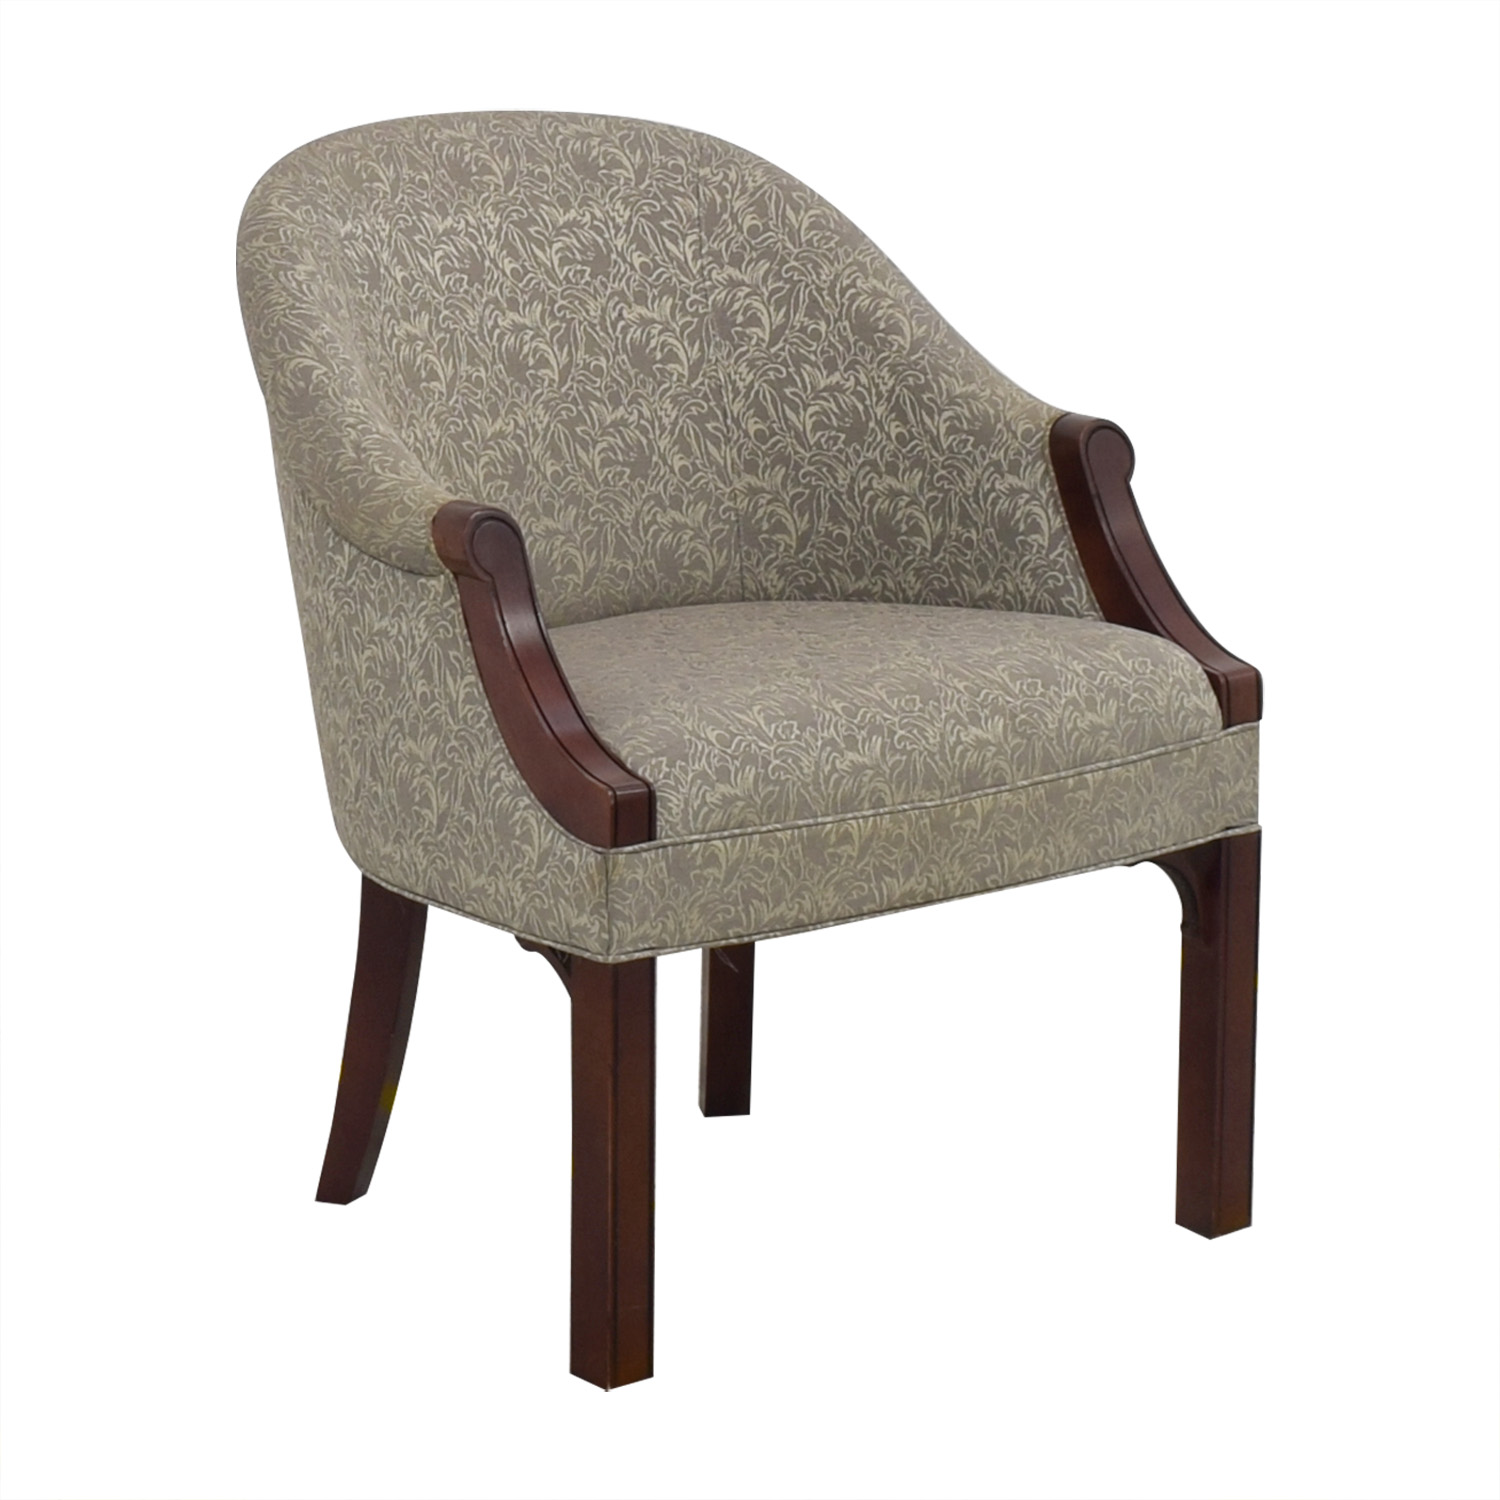 buy Kimball Independence Newcastle Chair Kimball